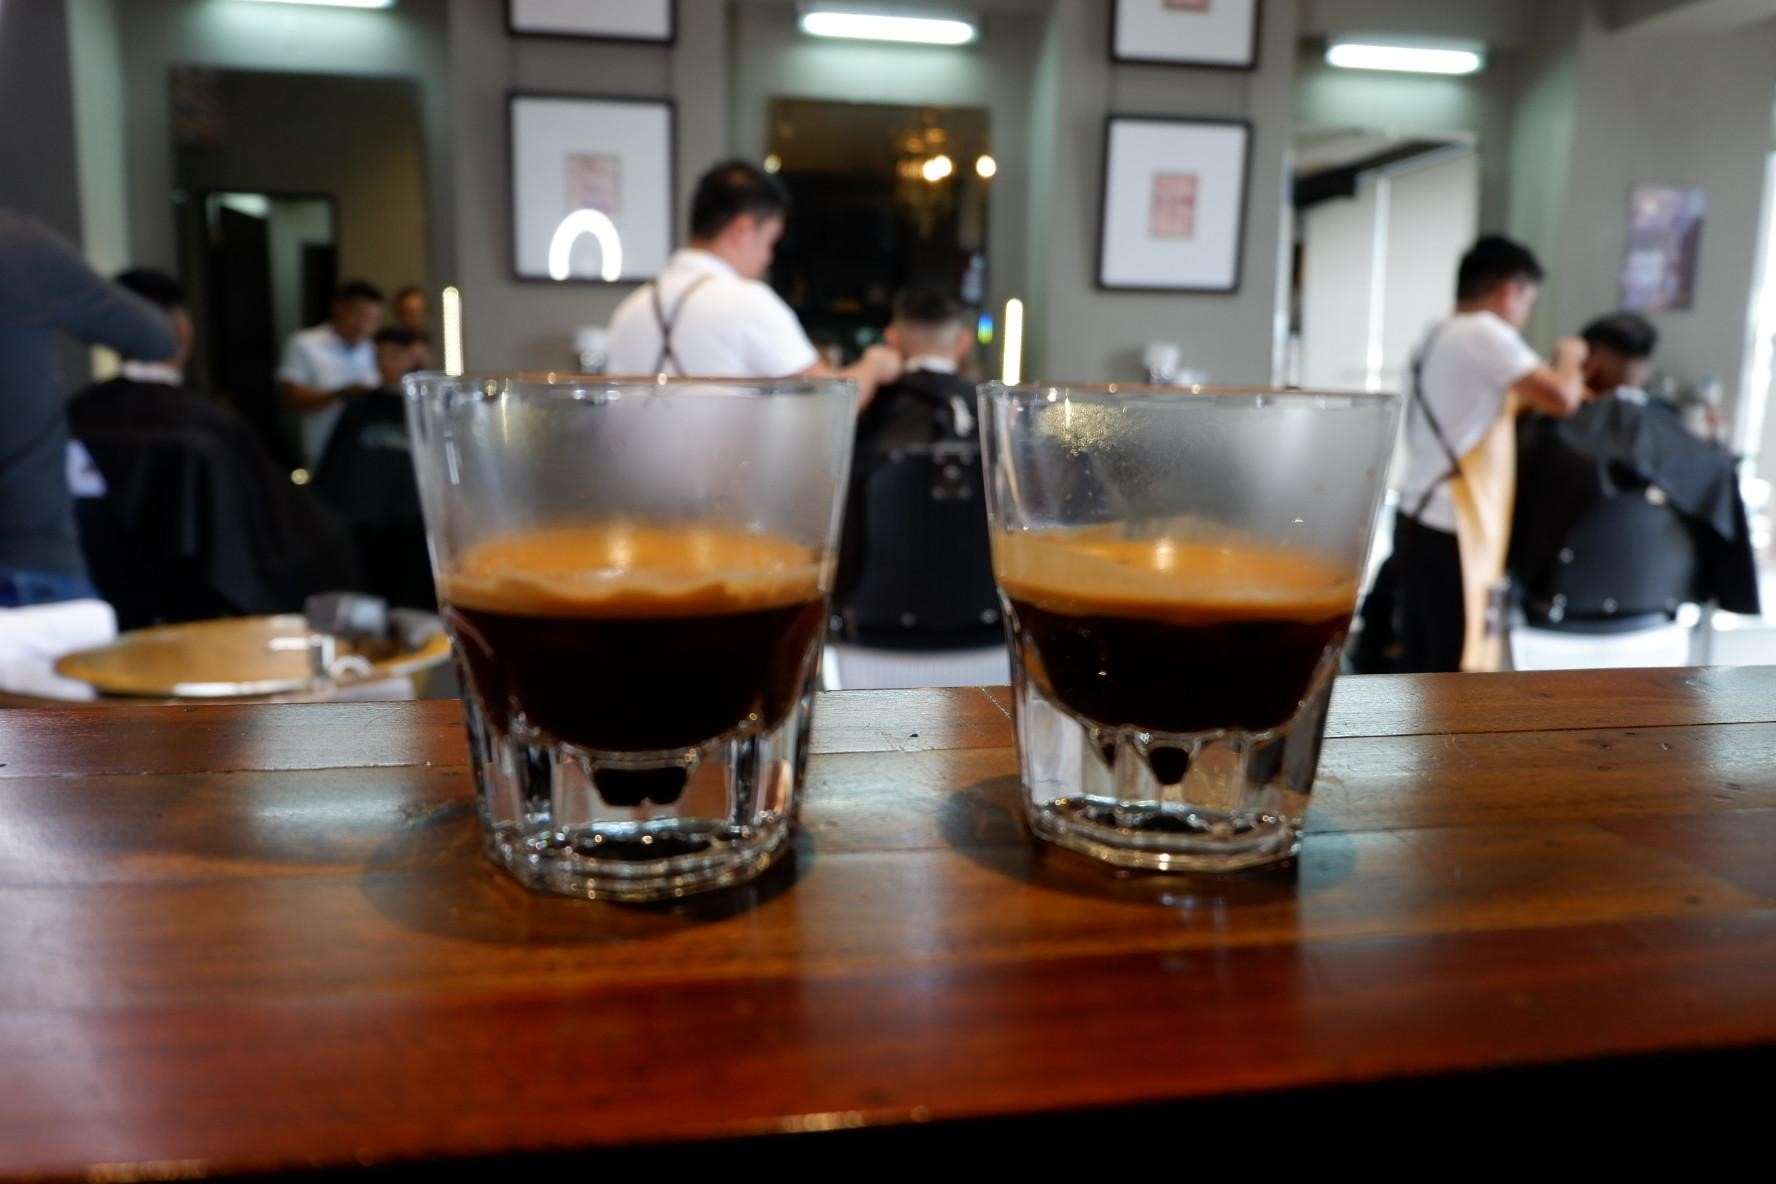 Two shots of espressos ready to be enjoyed